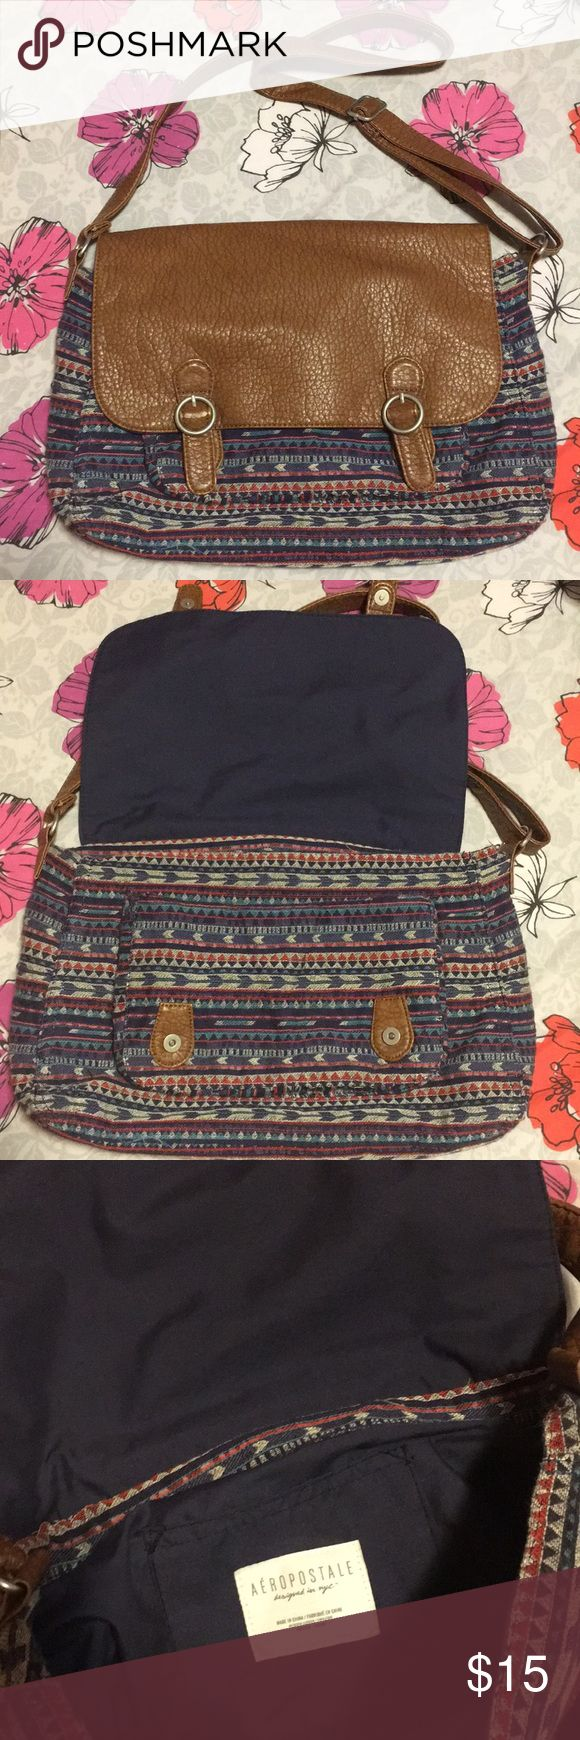 🎉SALE🎉 Boho chic messenger bag! This bohemian style messenger bag is great for school/college use. It's adds style to every outfit and is big enough to fit laptop and books! Aeropostale Bags Crossbody Bags